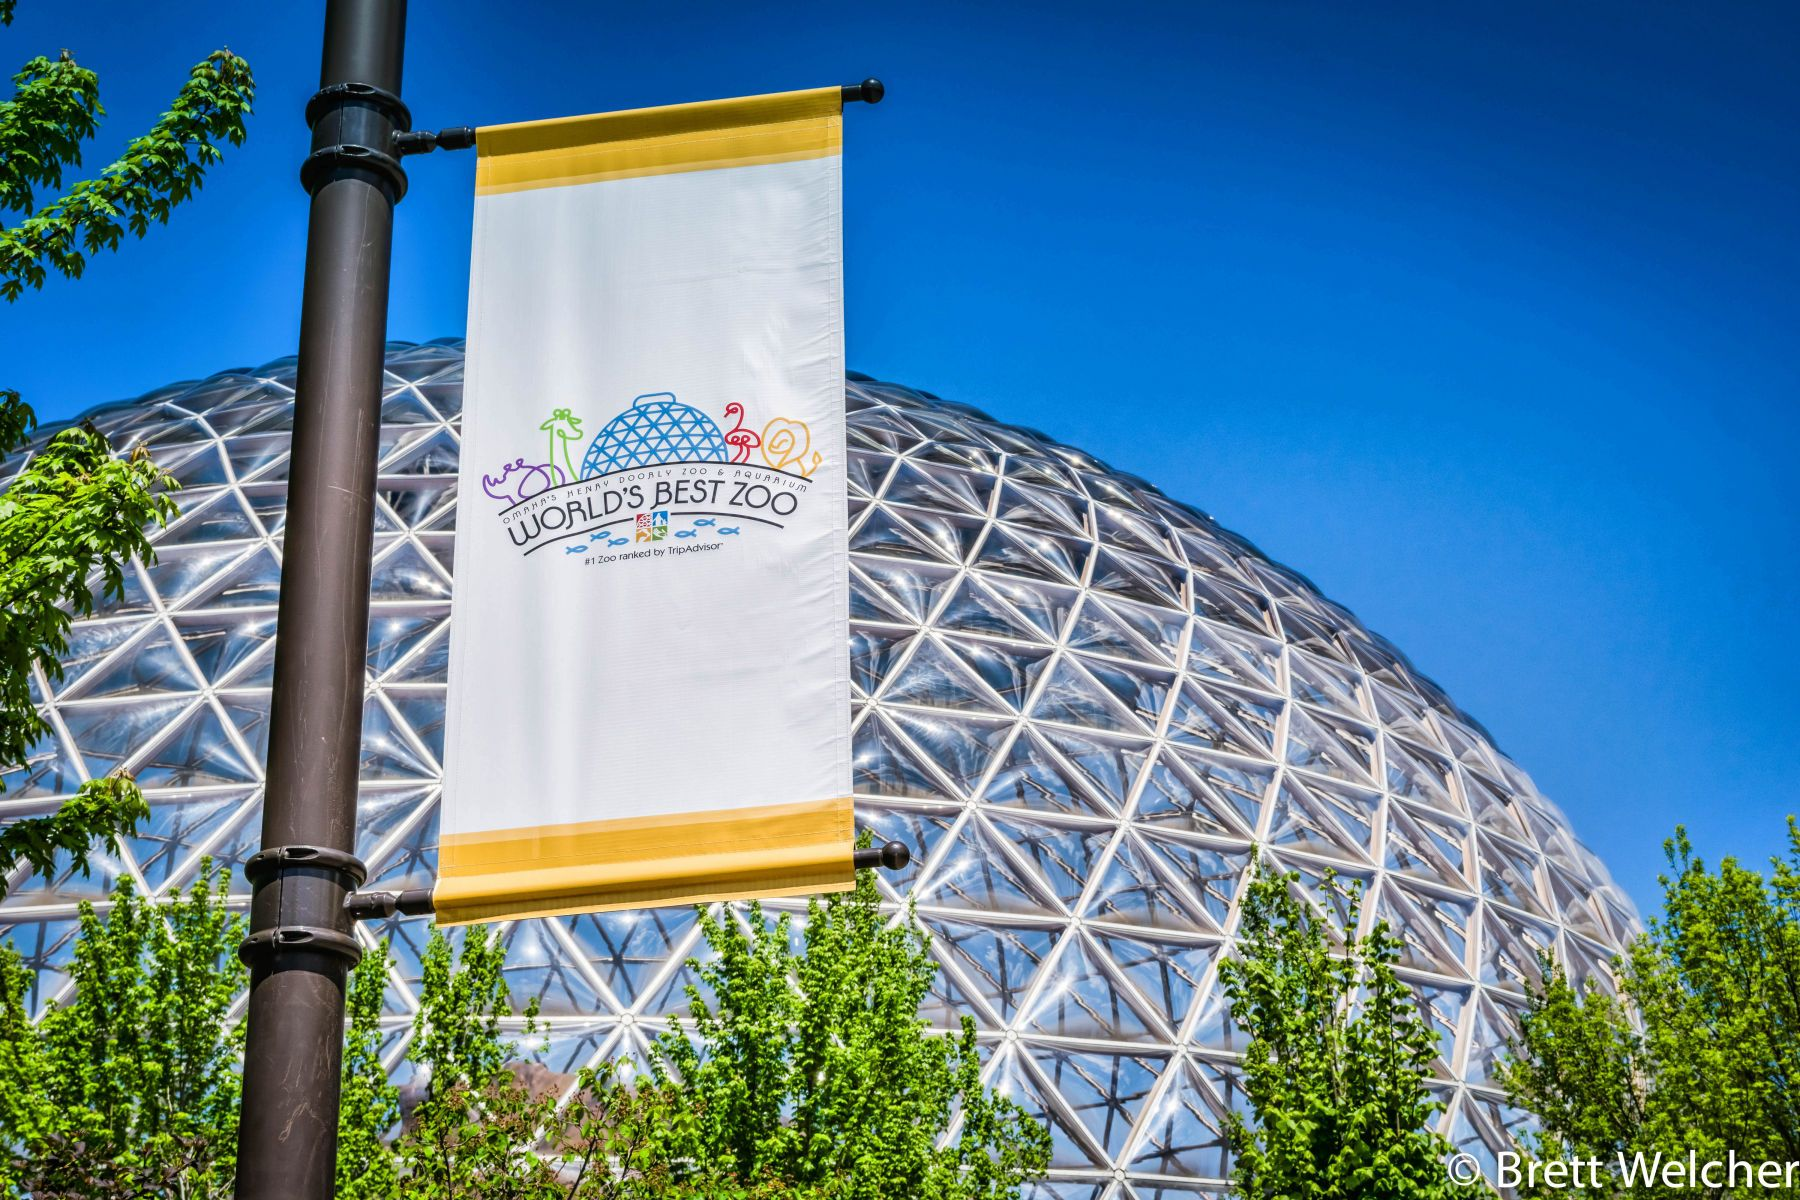 Omaha's Henry Doorly Zoo and Aquarium is ranked the #1 zoo in the country by TripAdvisor. Visitors can step inside the world's largest indoor desert and one of North America's largest indoor rainforests. Other world-class exhibits include the Scott Aquariu